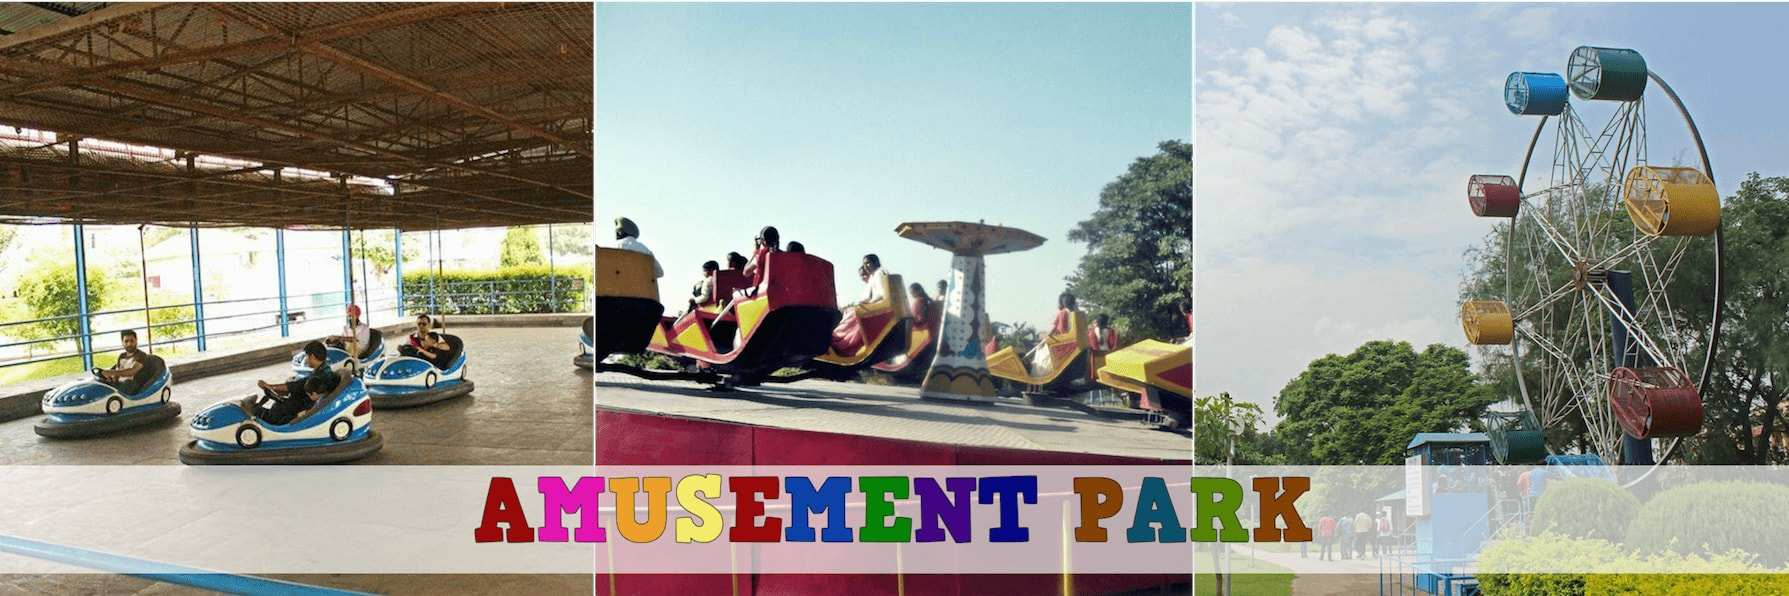 Amusement-park-Funcity-Chandigarh.jpg